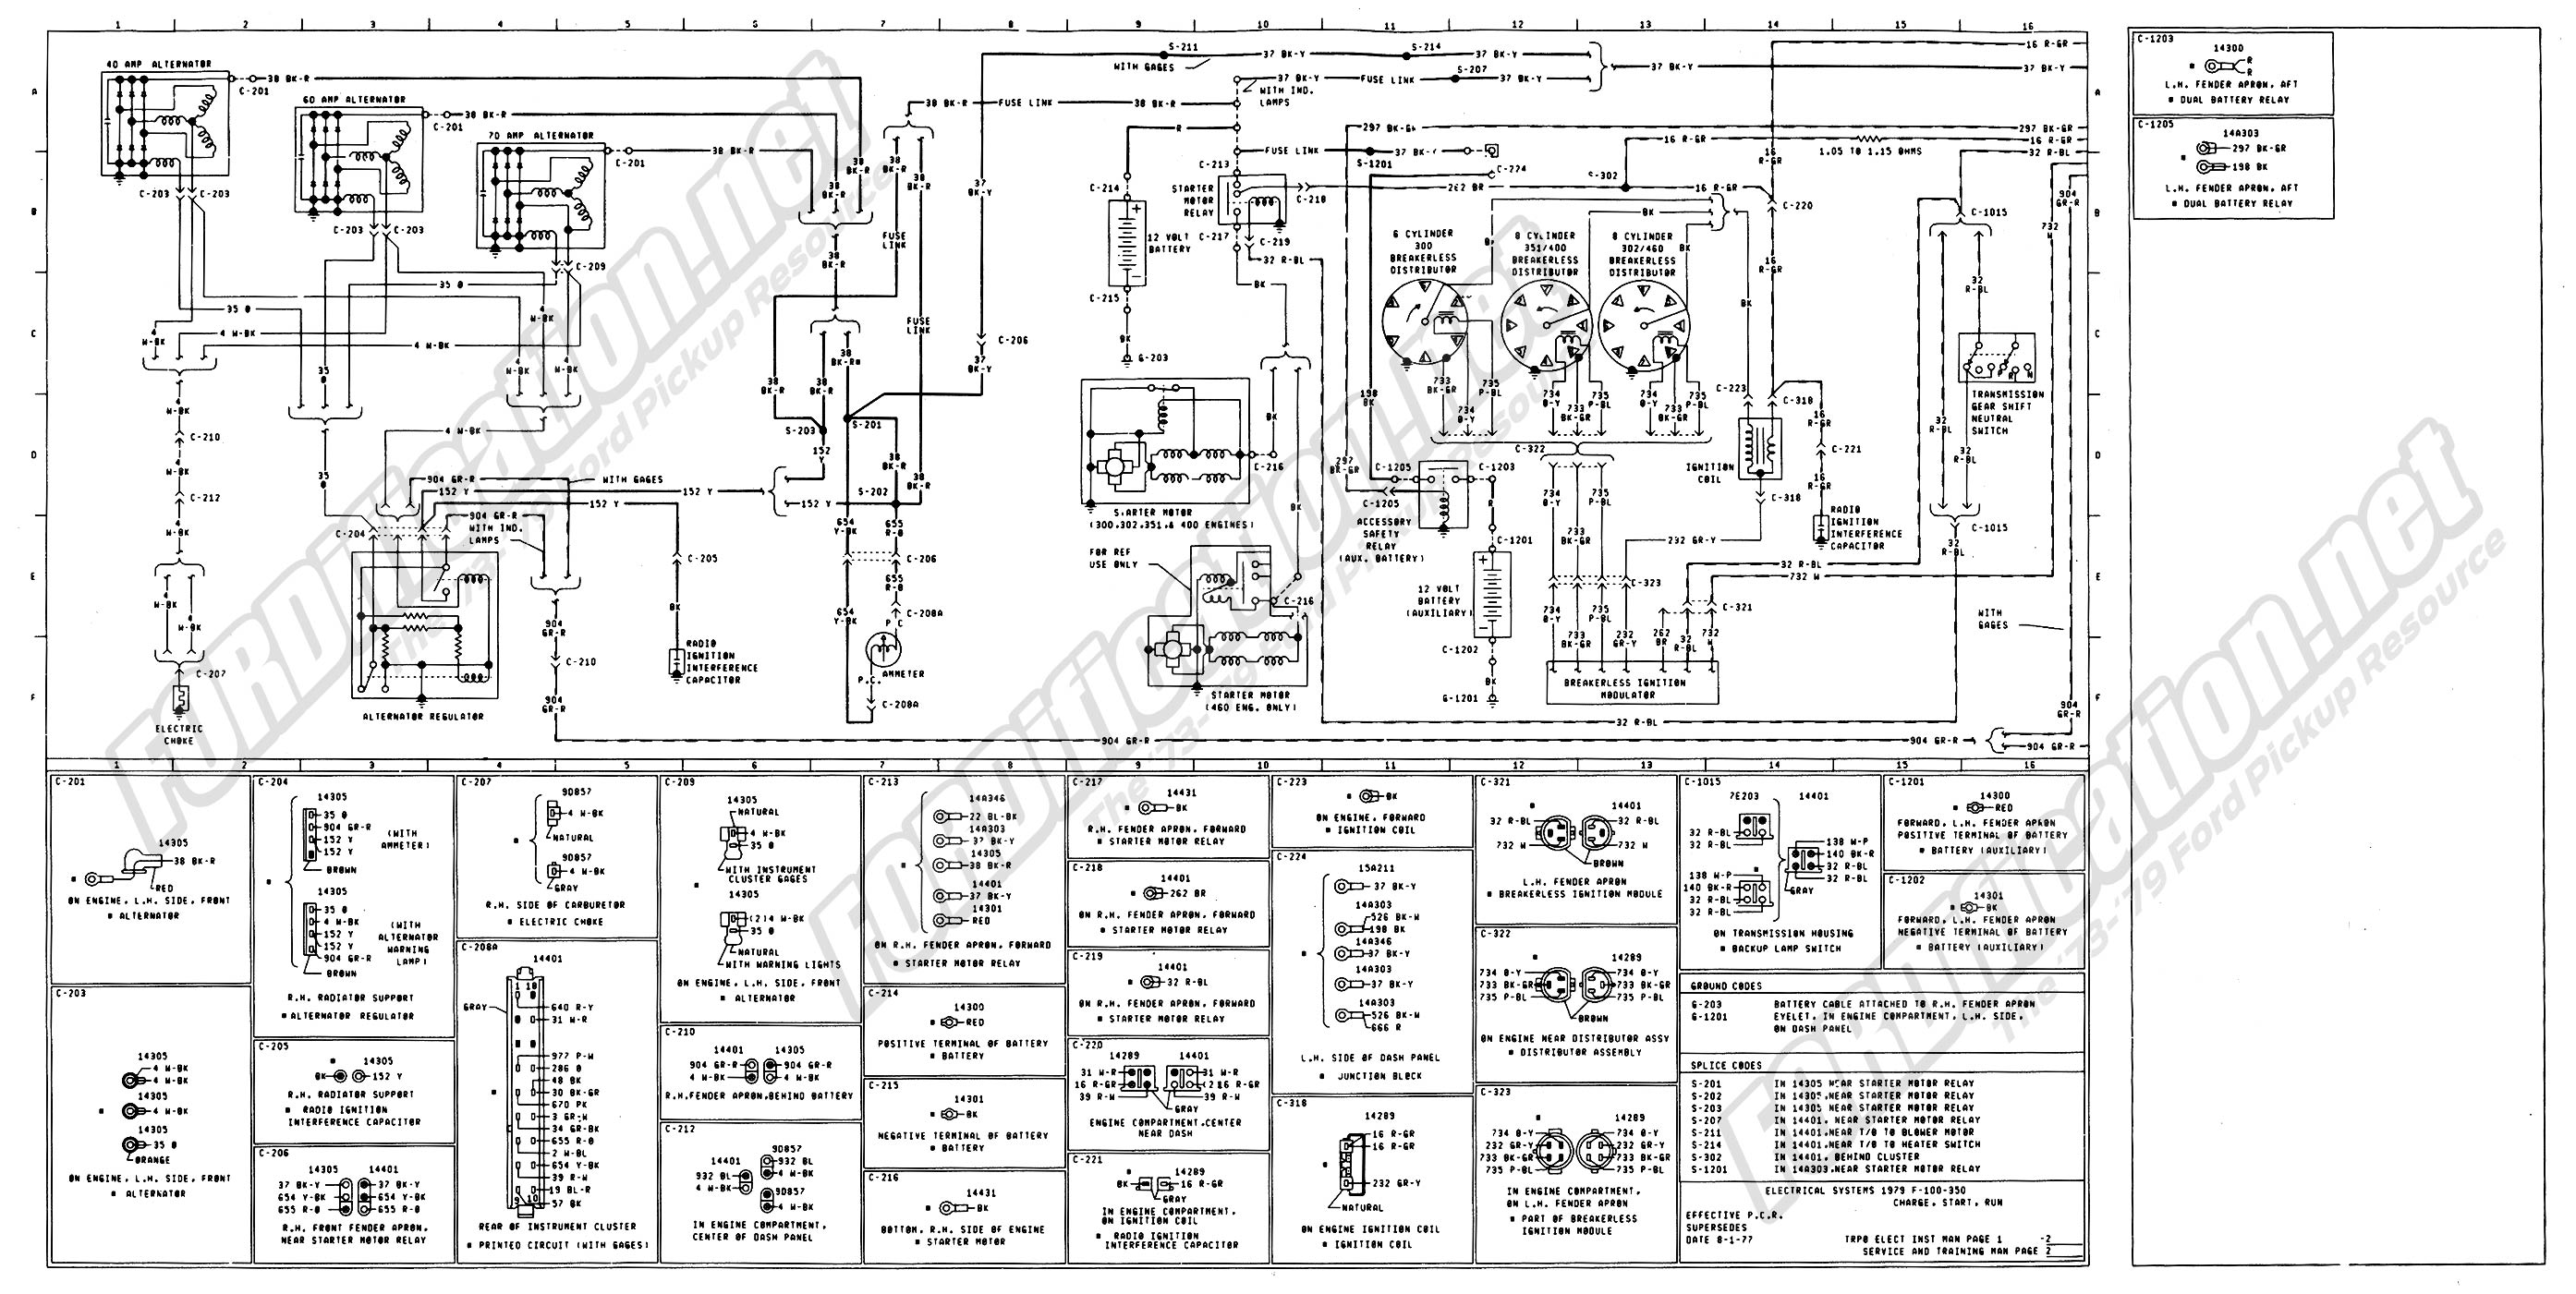 wiring_79master_2of9 1975 f150 ignition wiring diagram 97 f150 wiring diagram \u2022 wiring 86 f150 wiring diagram at eliteediting.co